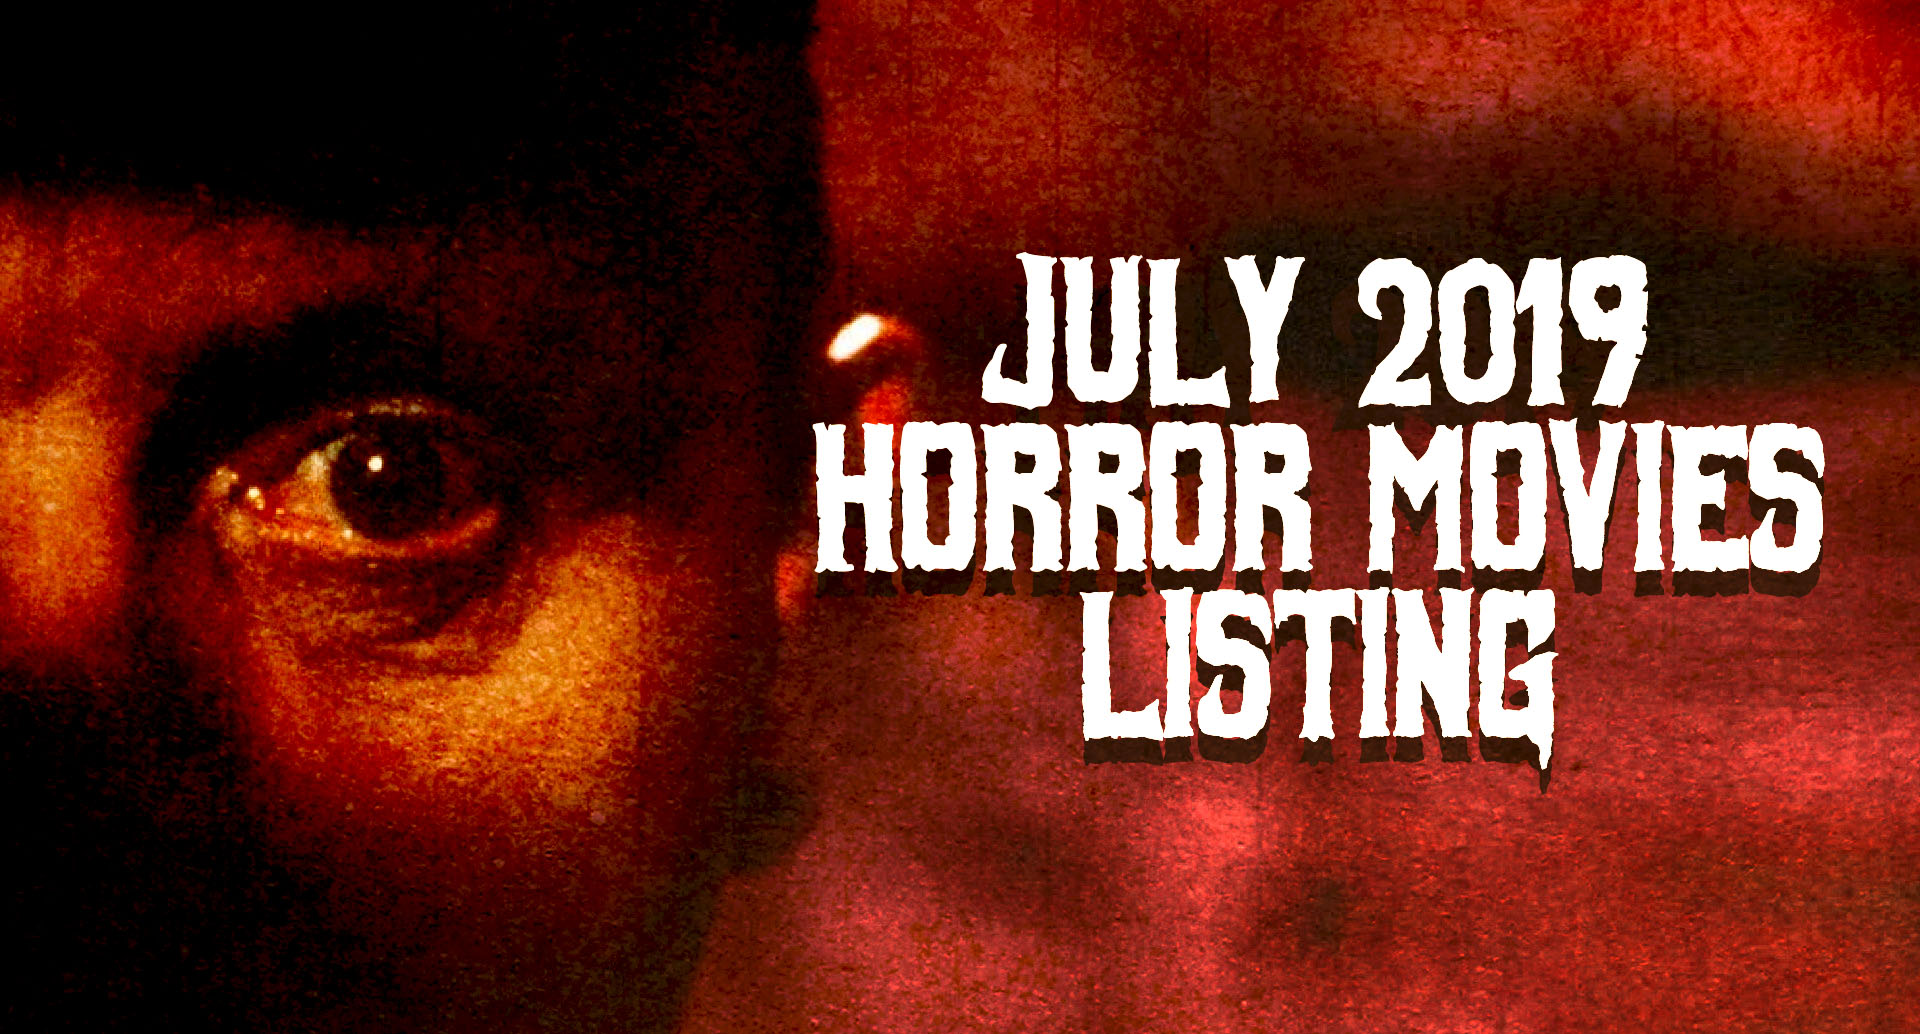 Horror Movies Showing in July 2019